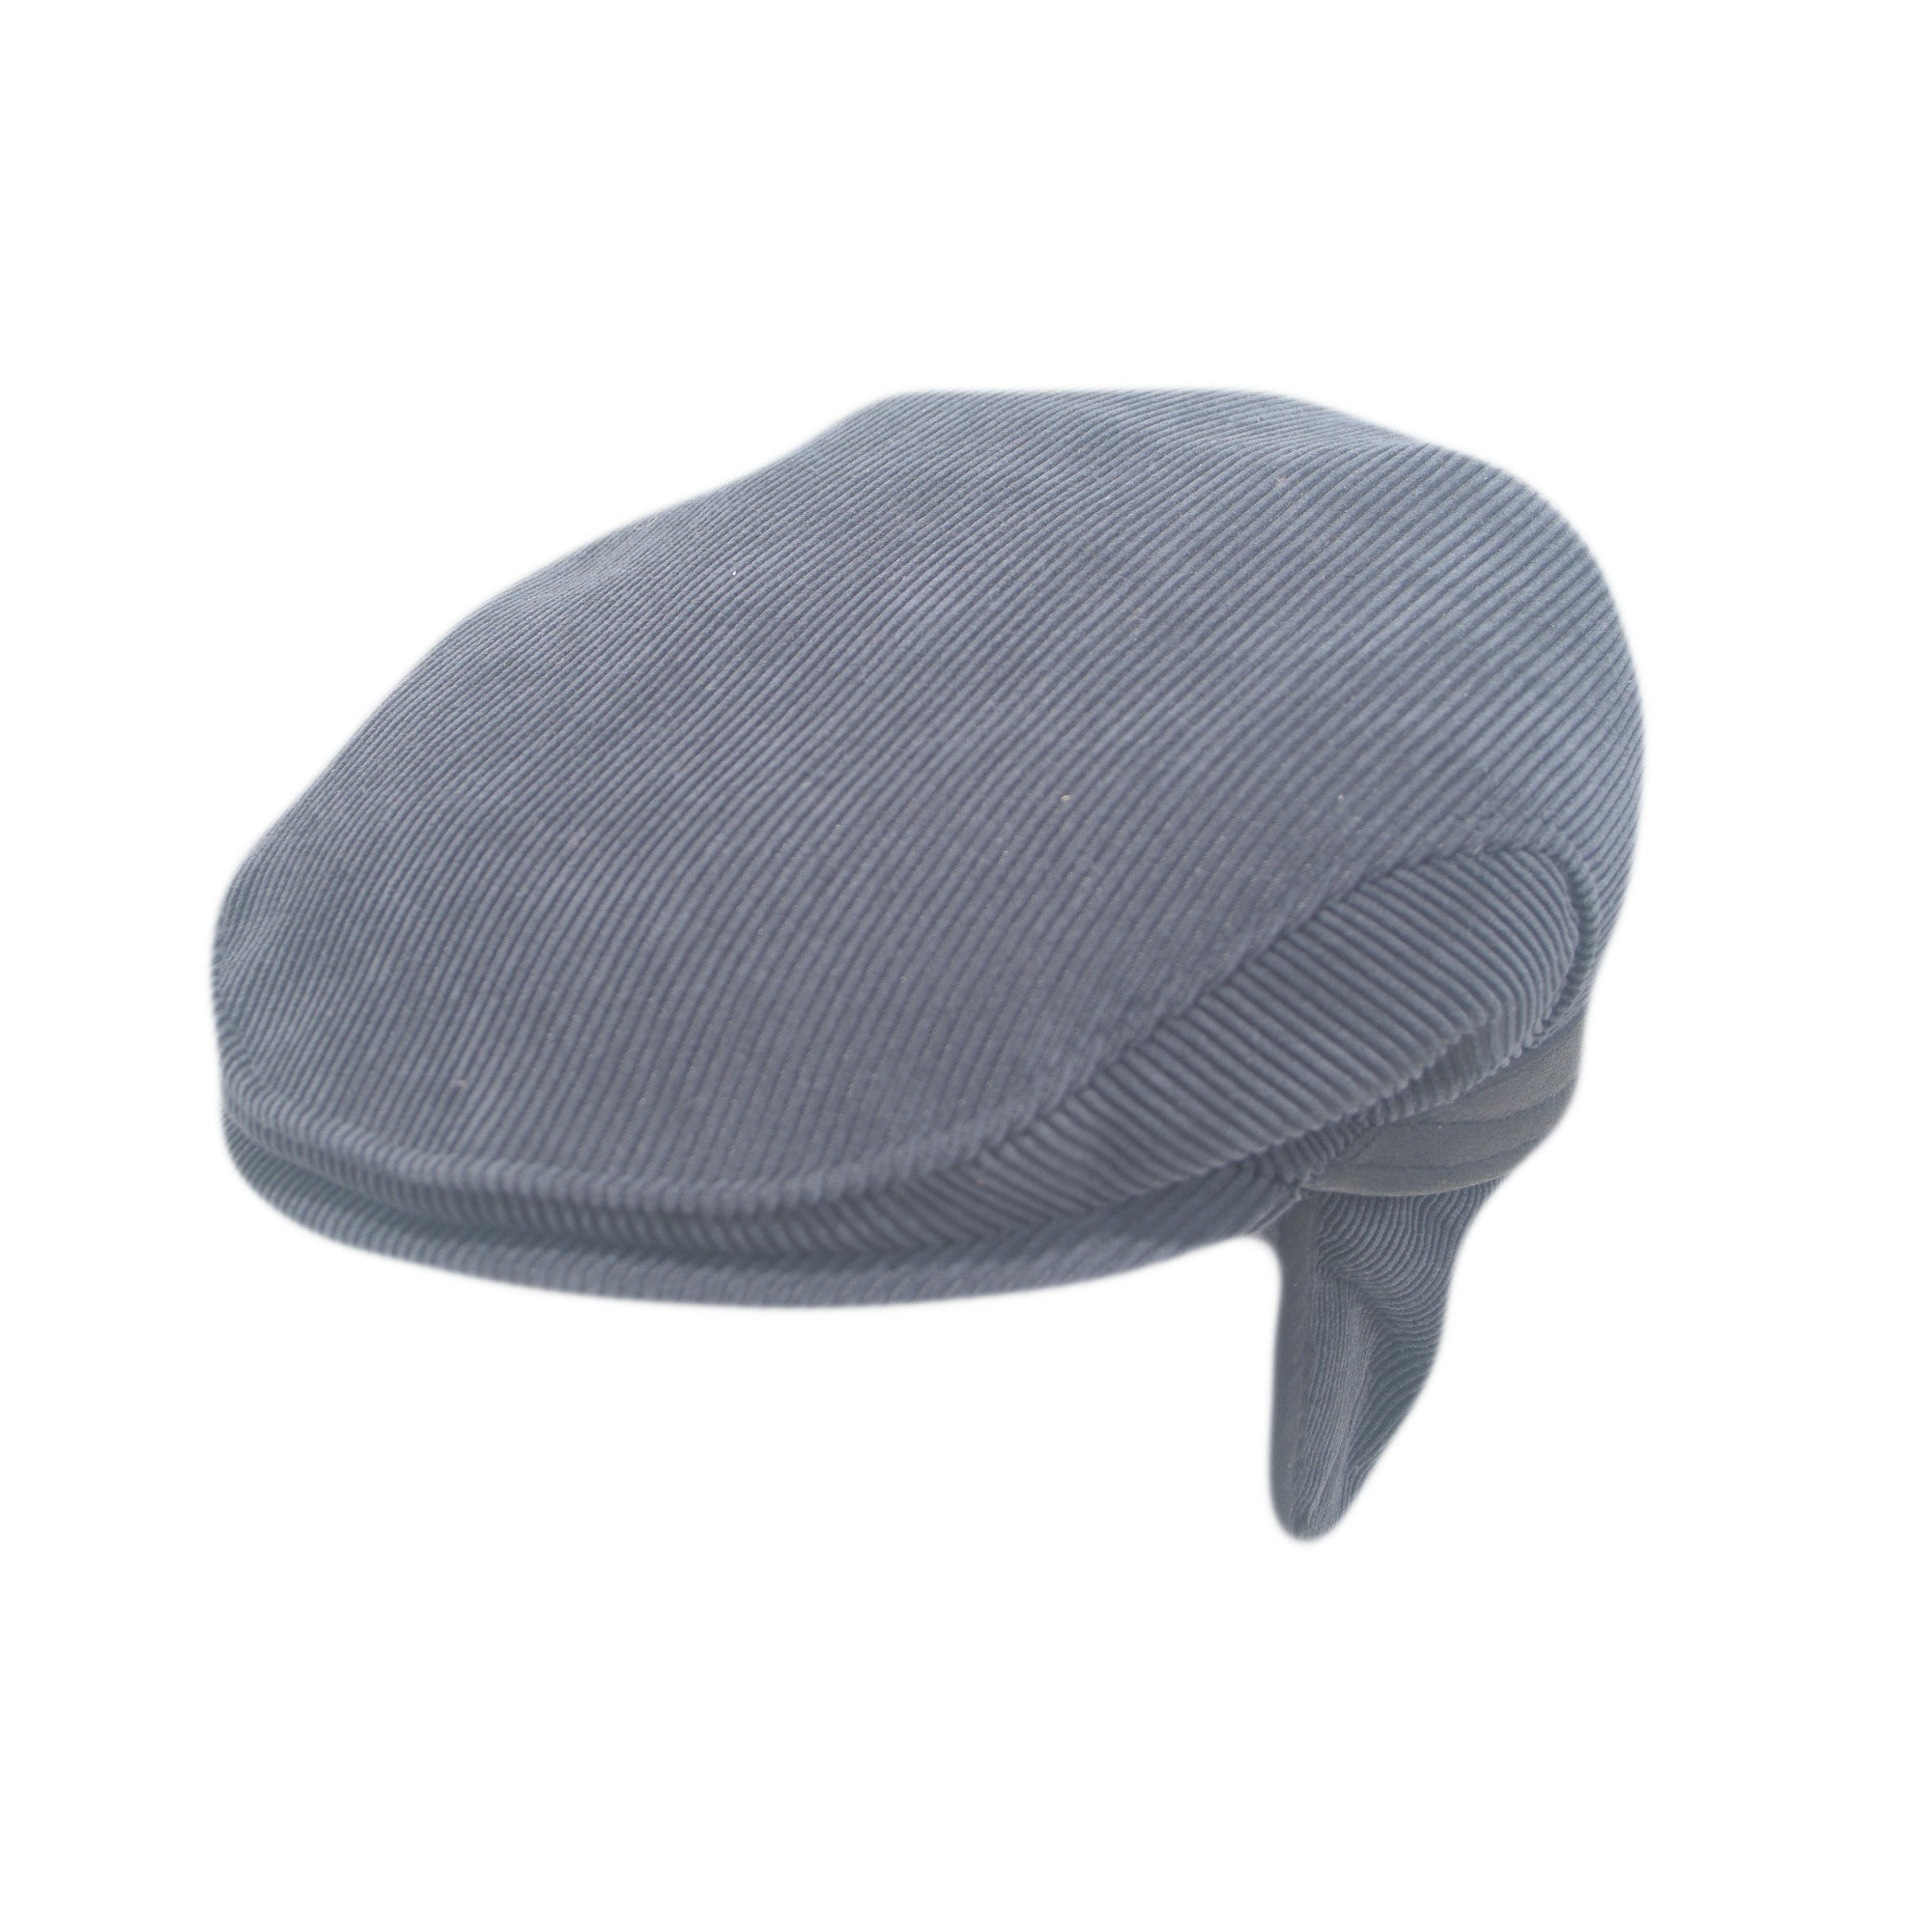 Black corduroy cap with ear flaps | buy now at The Cashmere Choice London